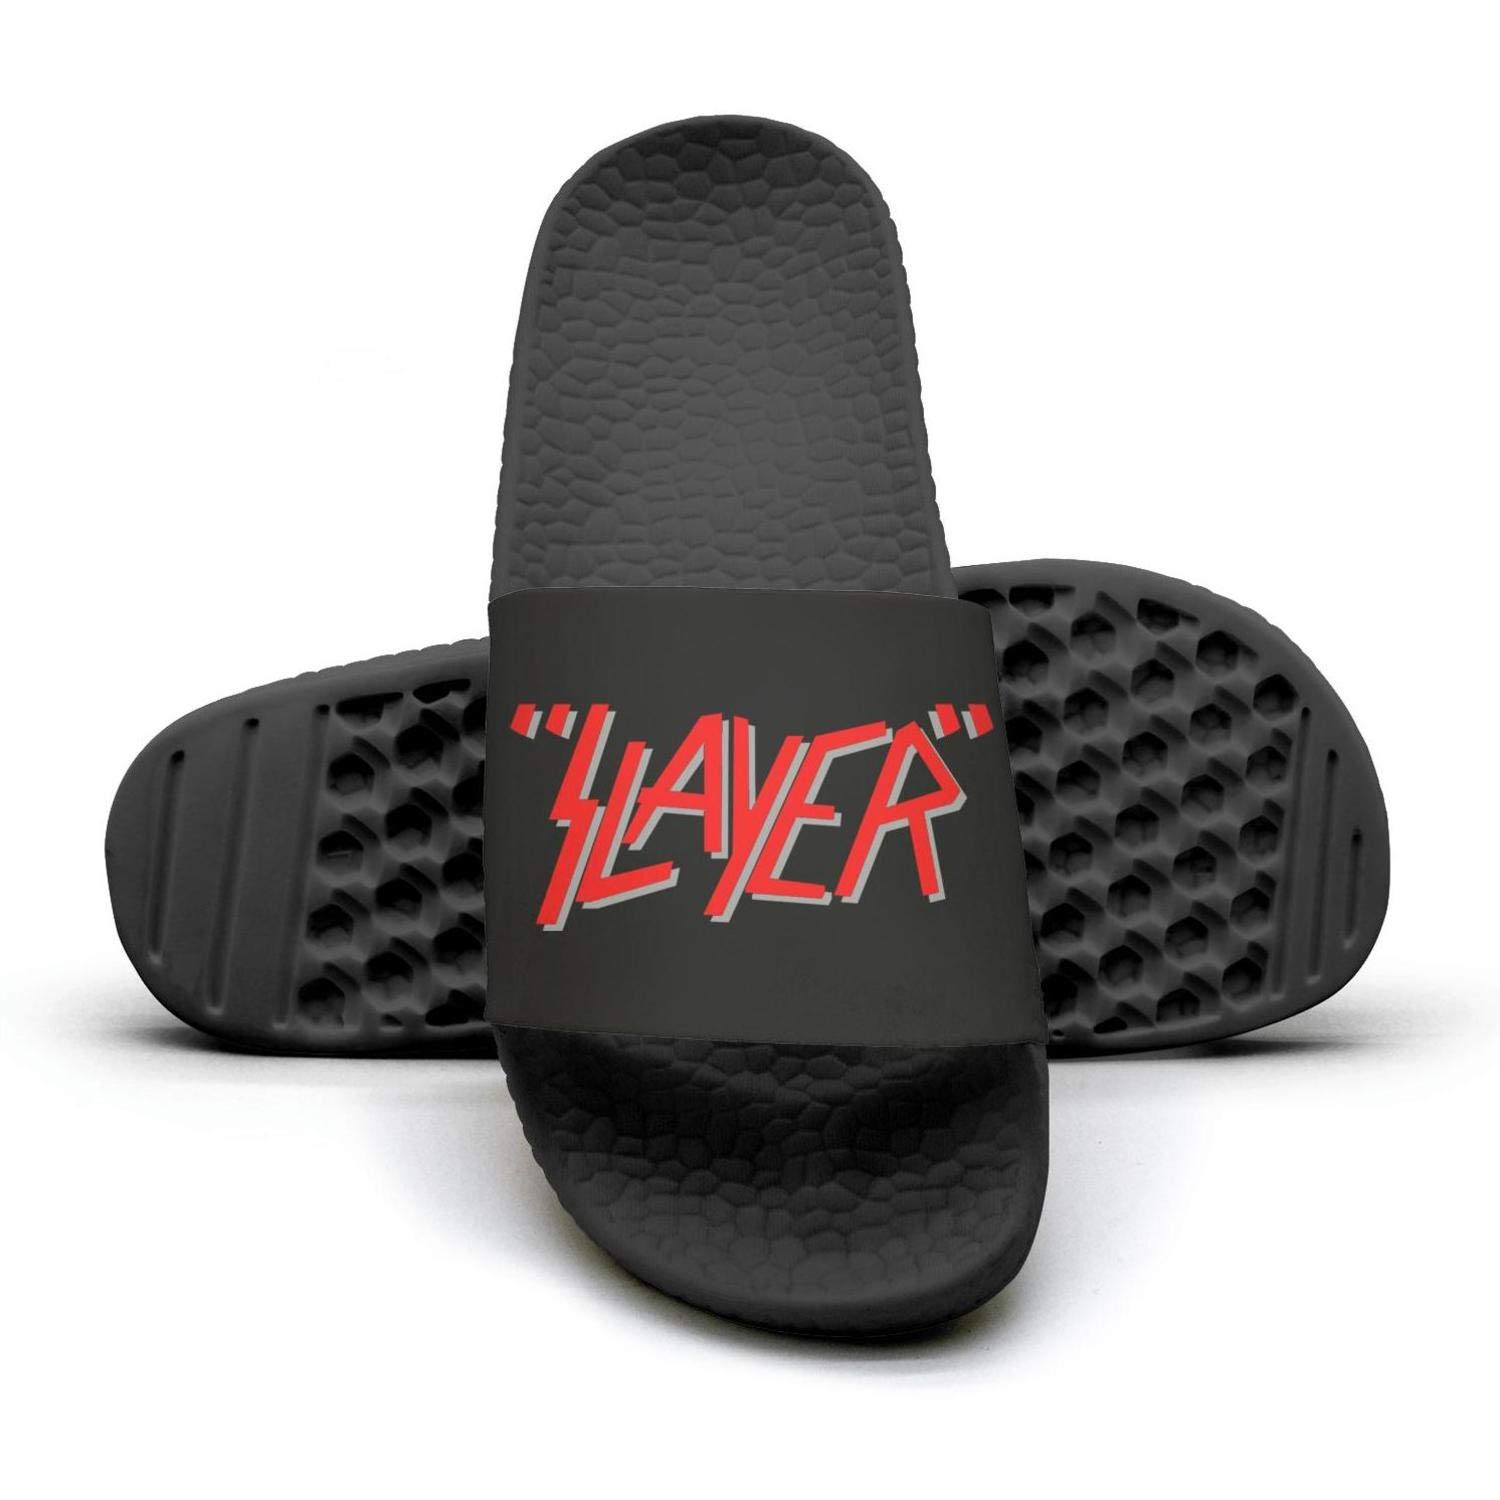 6558c01498a3 Amazon.com  Slayer-eagle-Plakát- Indoor Flip-flops Summer Slides Slippers  Bath Anti-Slip for Men  Clothing